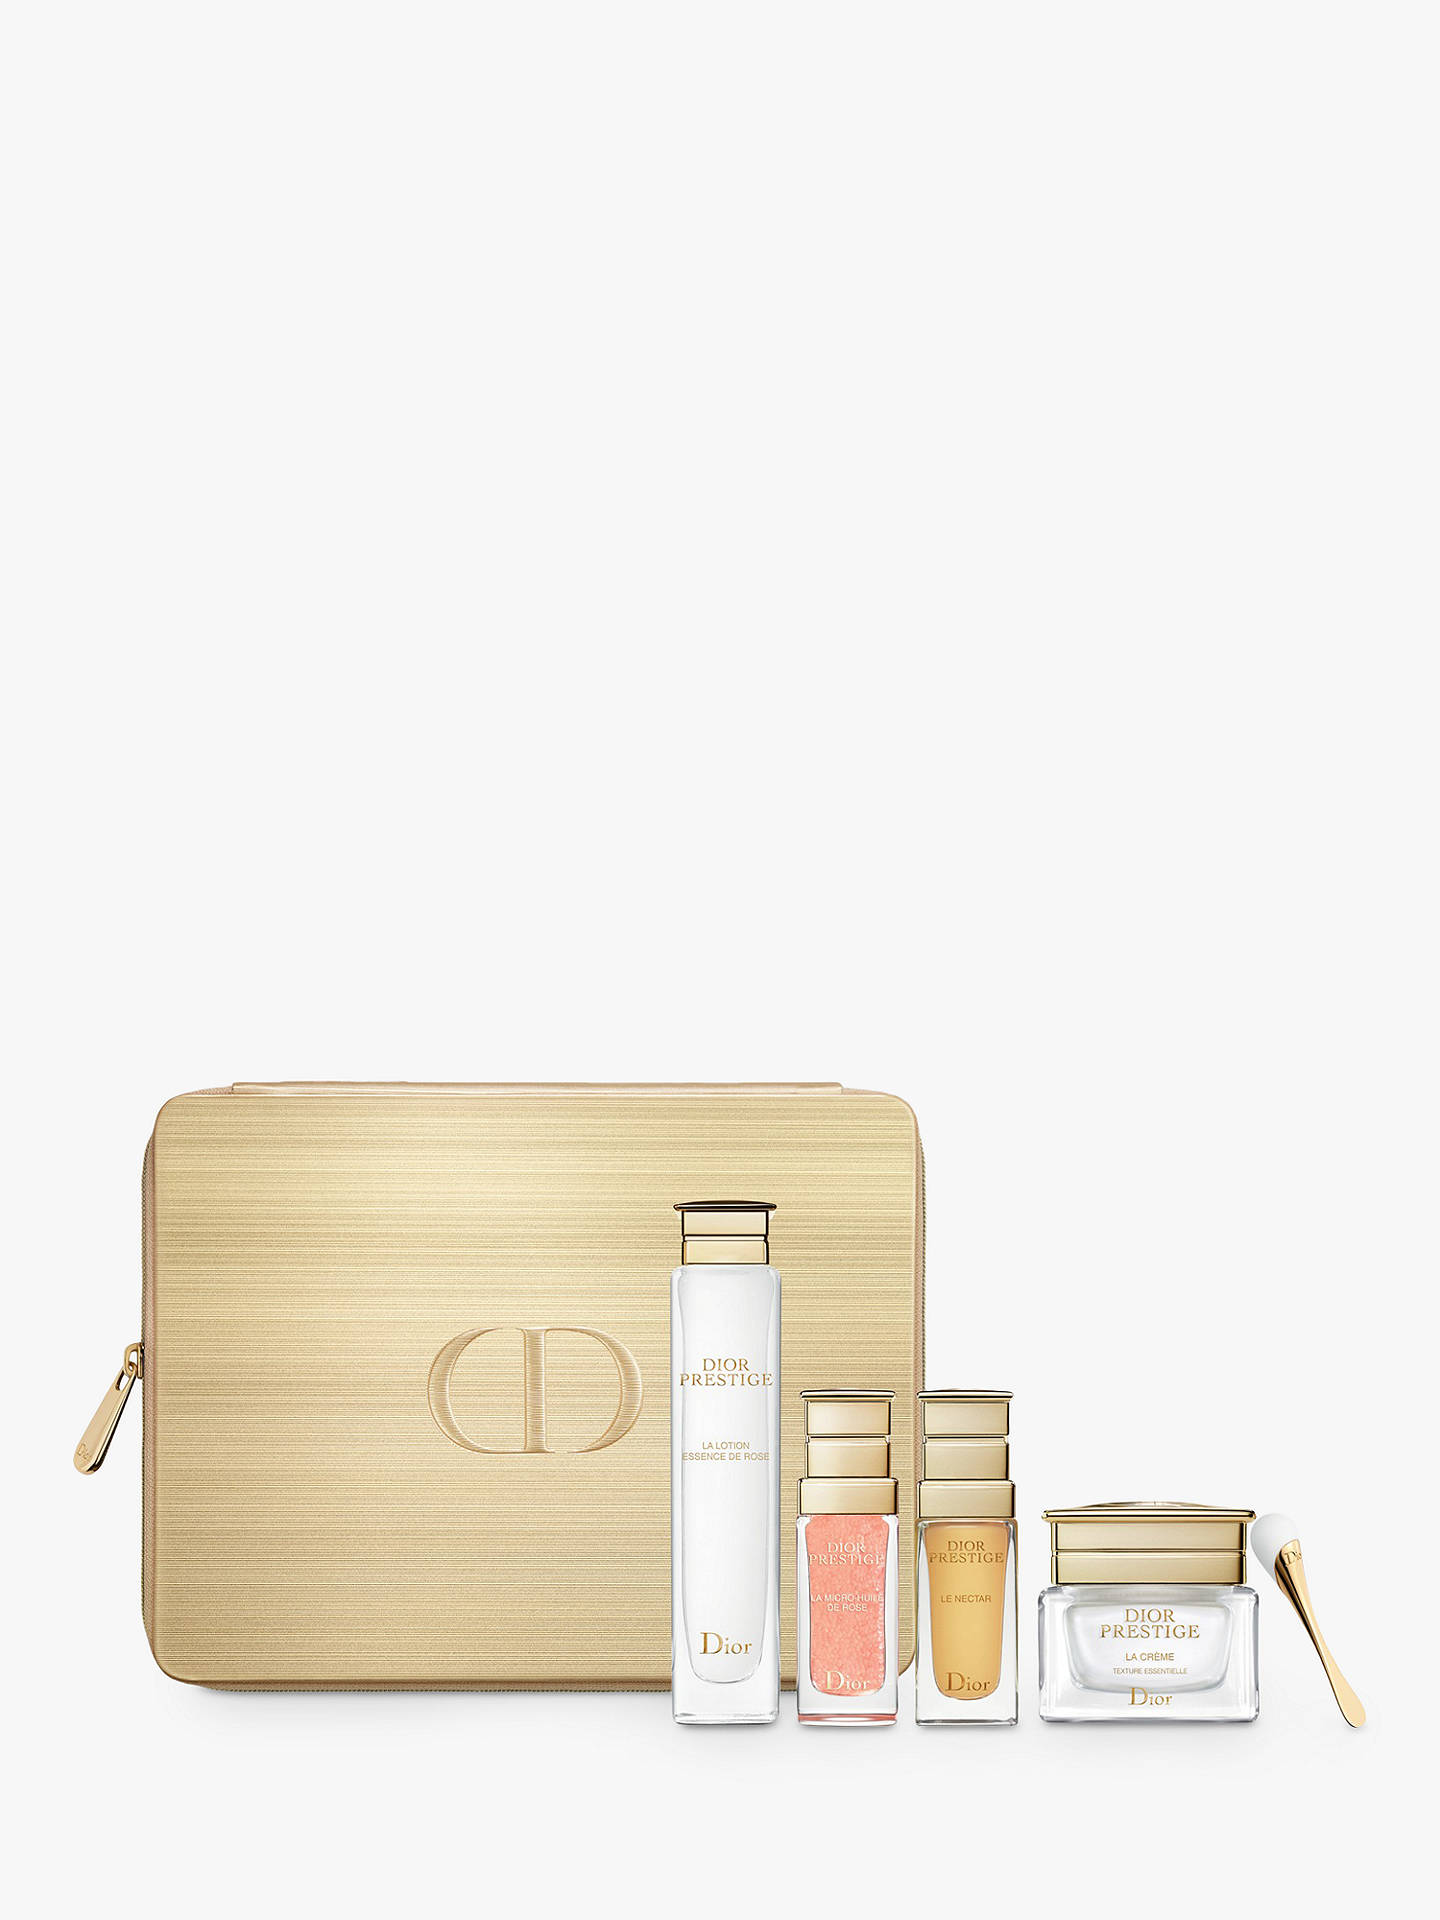 Buy Dior Prestige The Essentials Skincare Gift Set Online at johnlewis.com